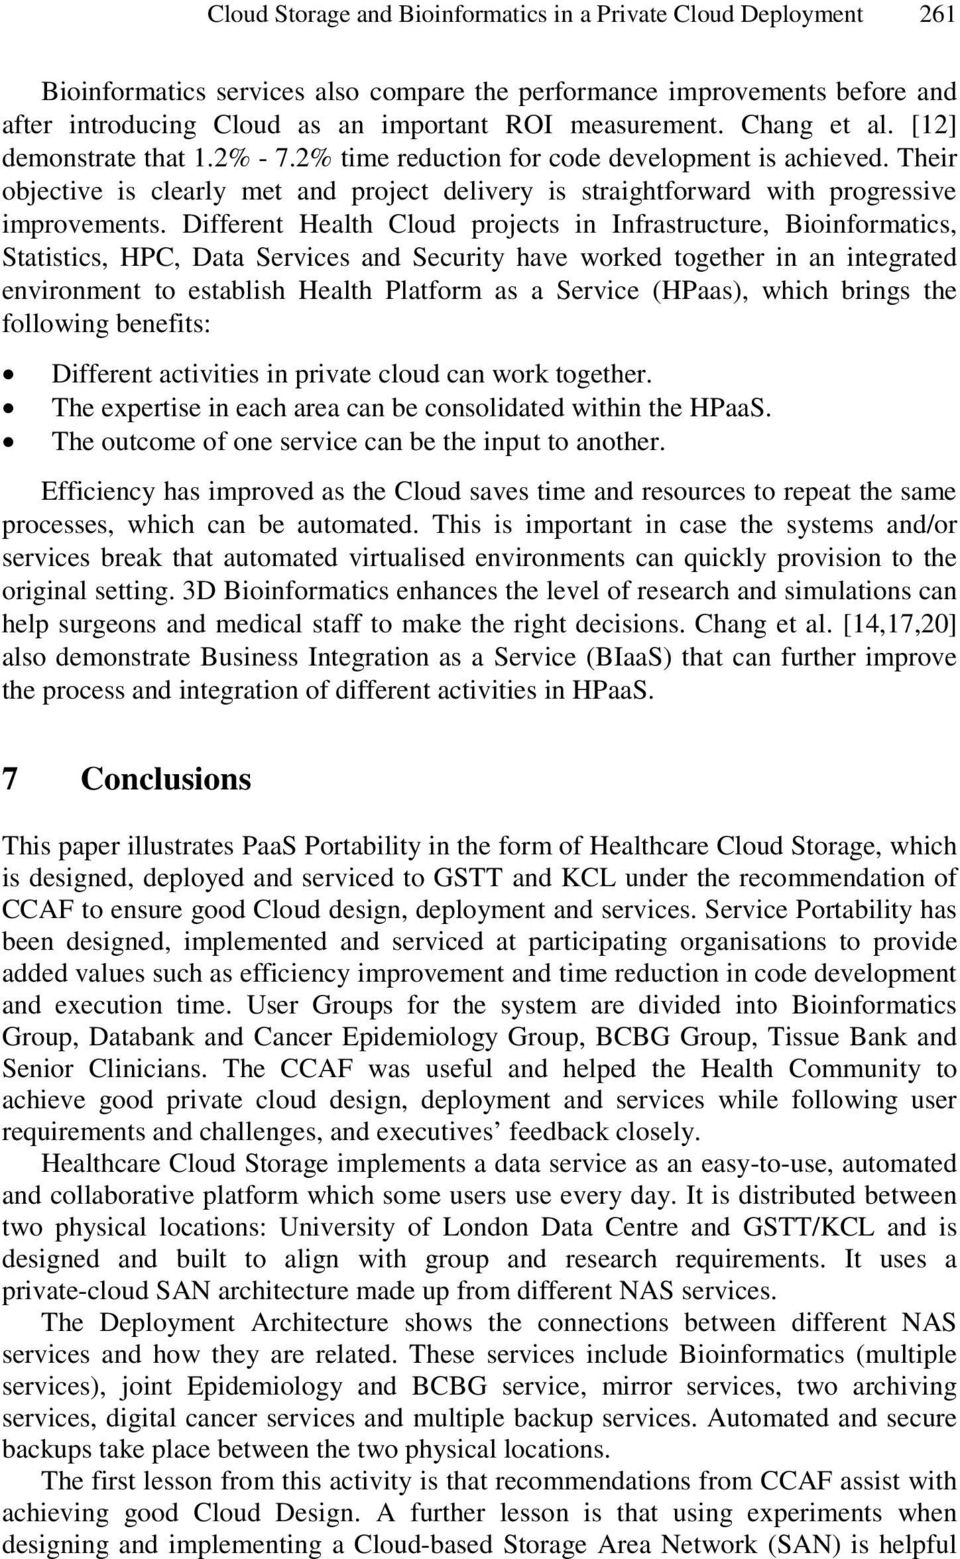 Different Health Cloud projects in Infrastructure, Bioinformatics, Statistics, HPC, Data Services and Security have worked together in an integrated environment to establish Health Platform as a